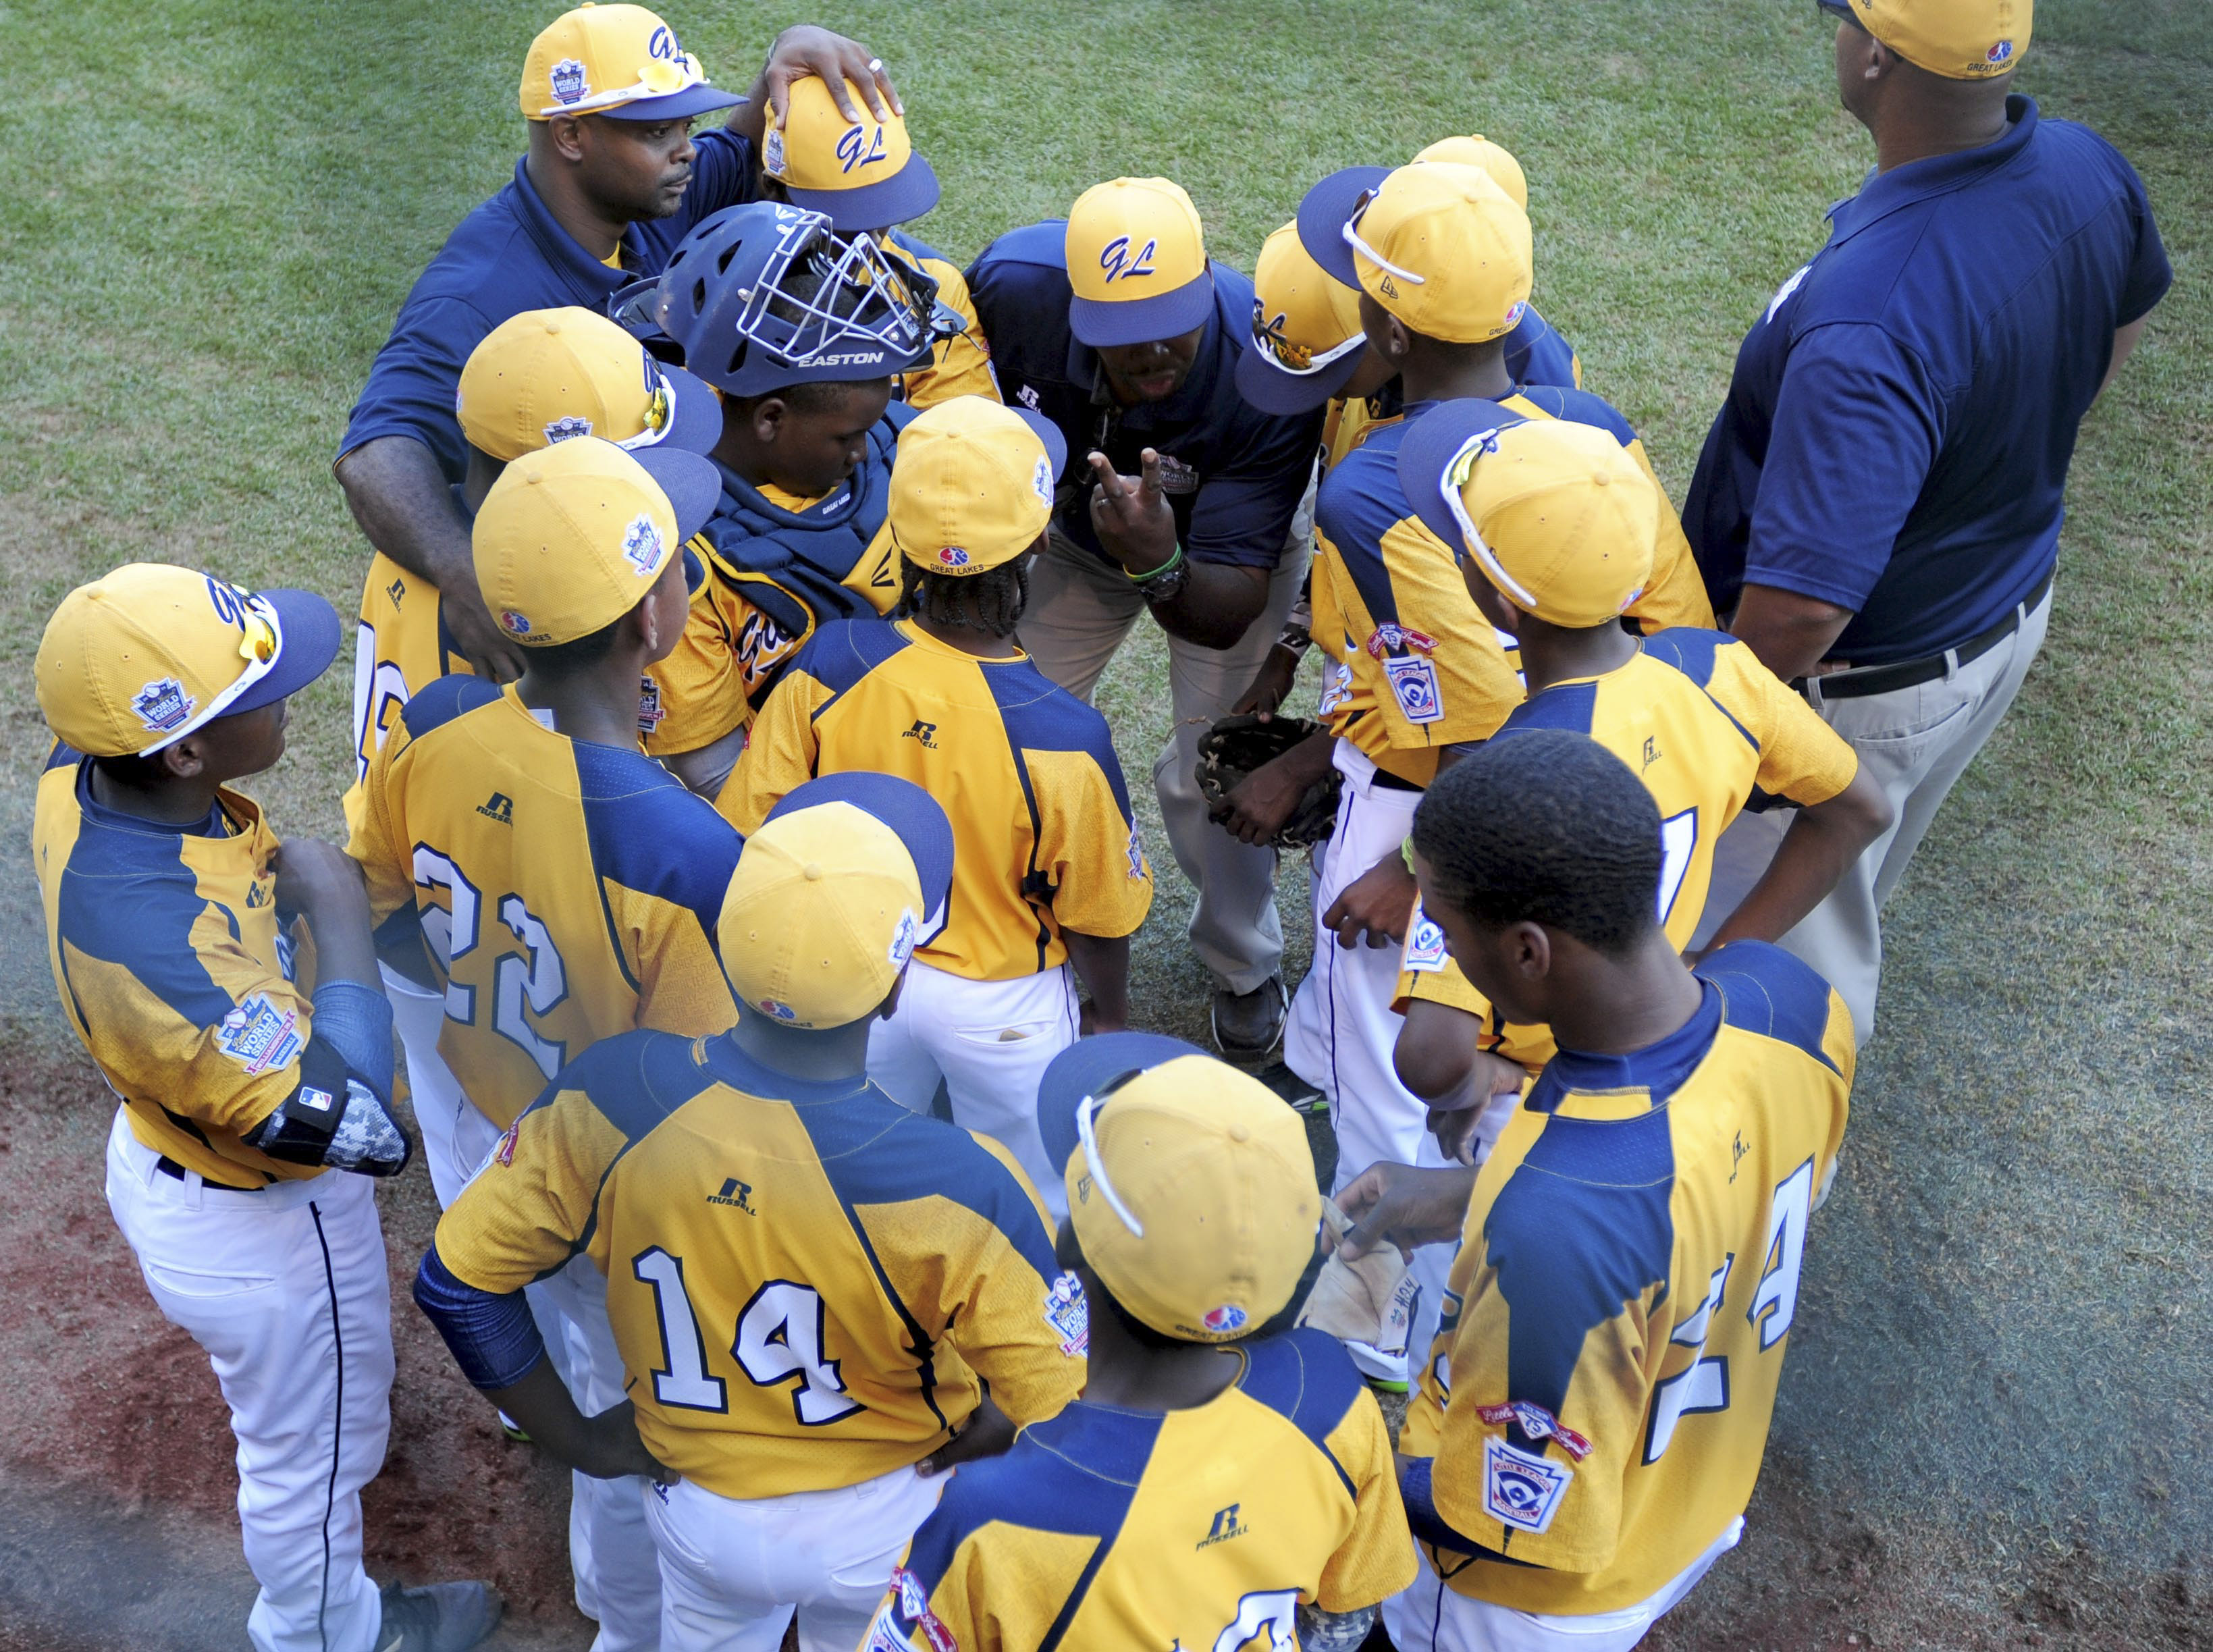 Jackie Robinson West Little League from Chicago represented the Great Laks at last year's World Series (Photo: Evan Habeeb, USA TODAY Sports)